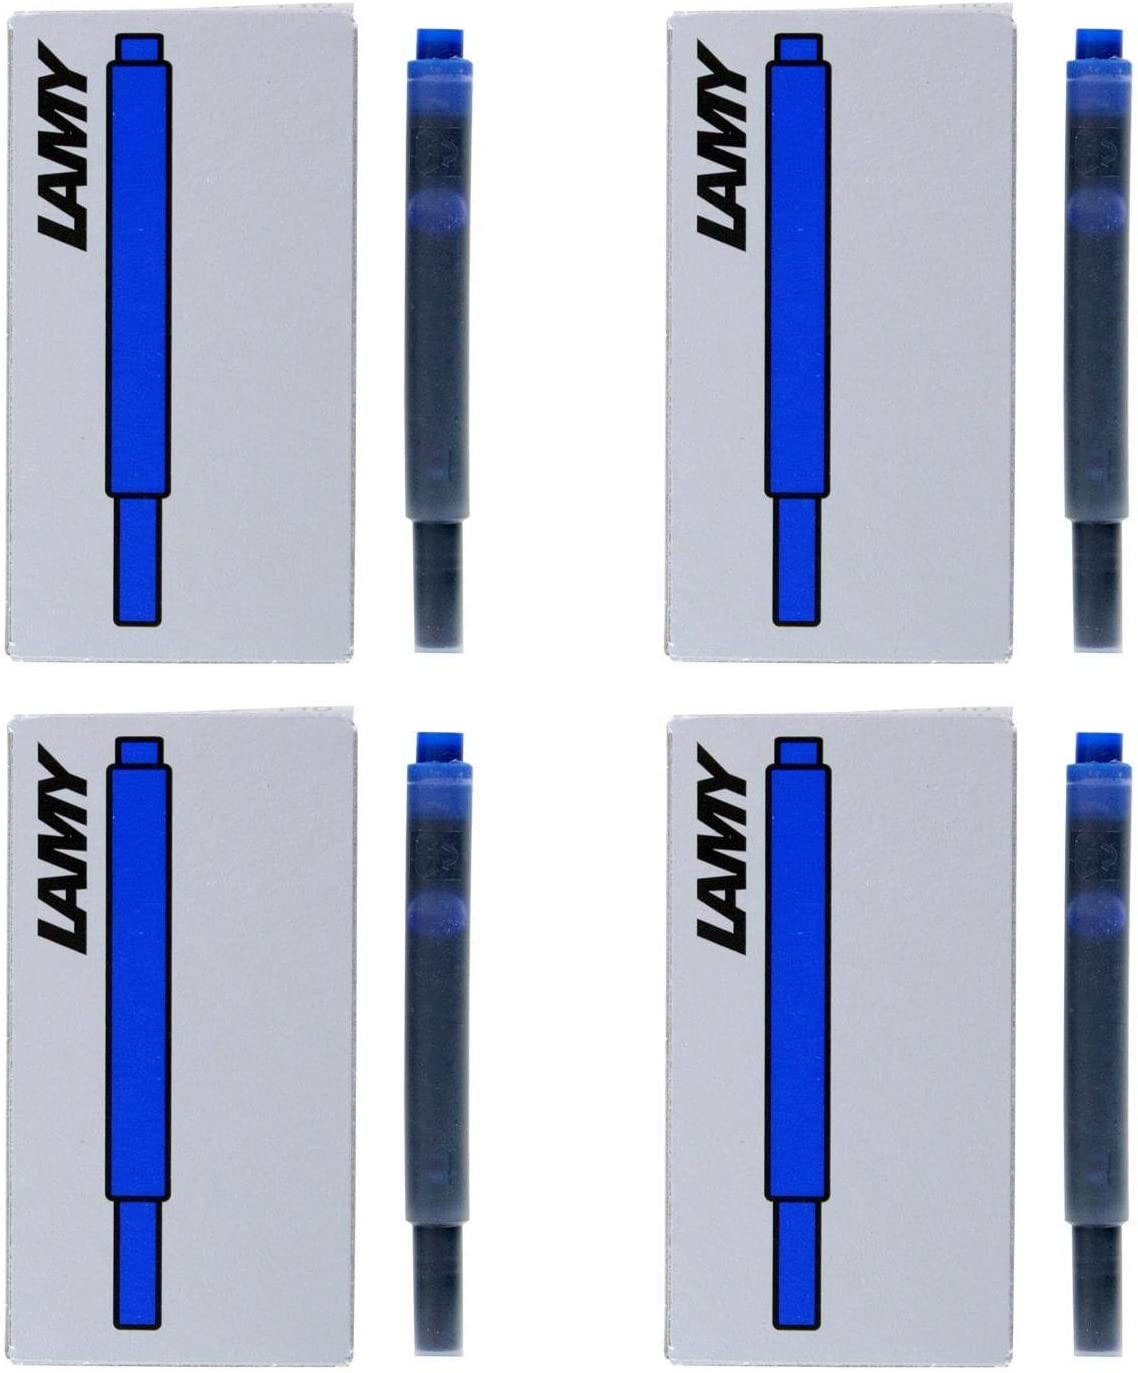 LAMY T10BL Ink Cartridge For Fountain Pens 5 Count Blue Washable